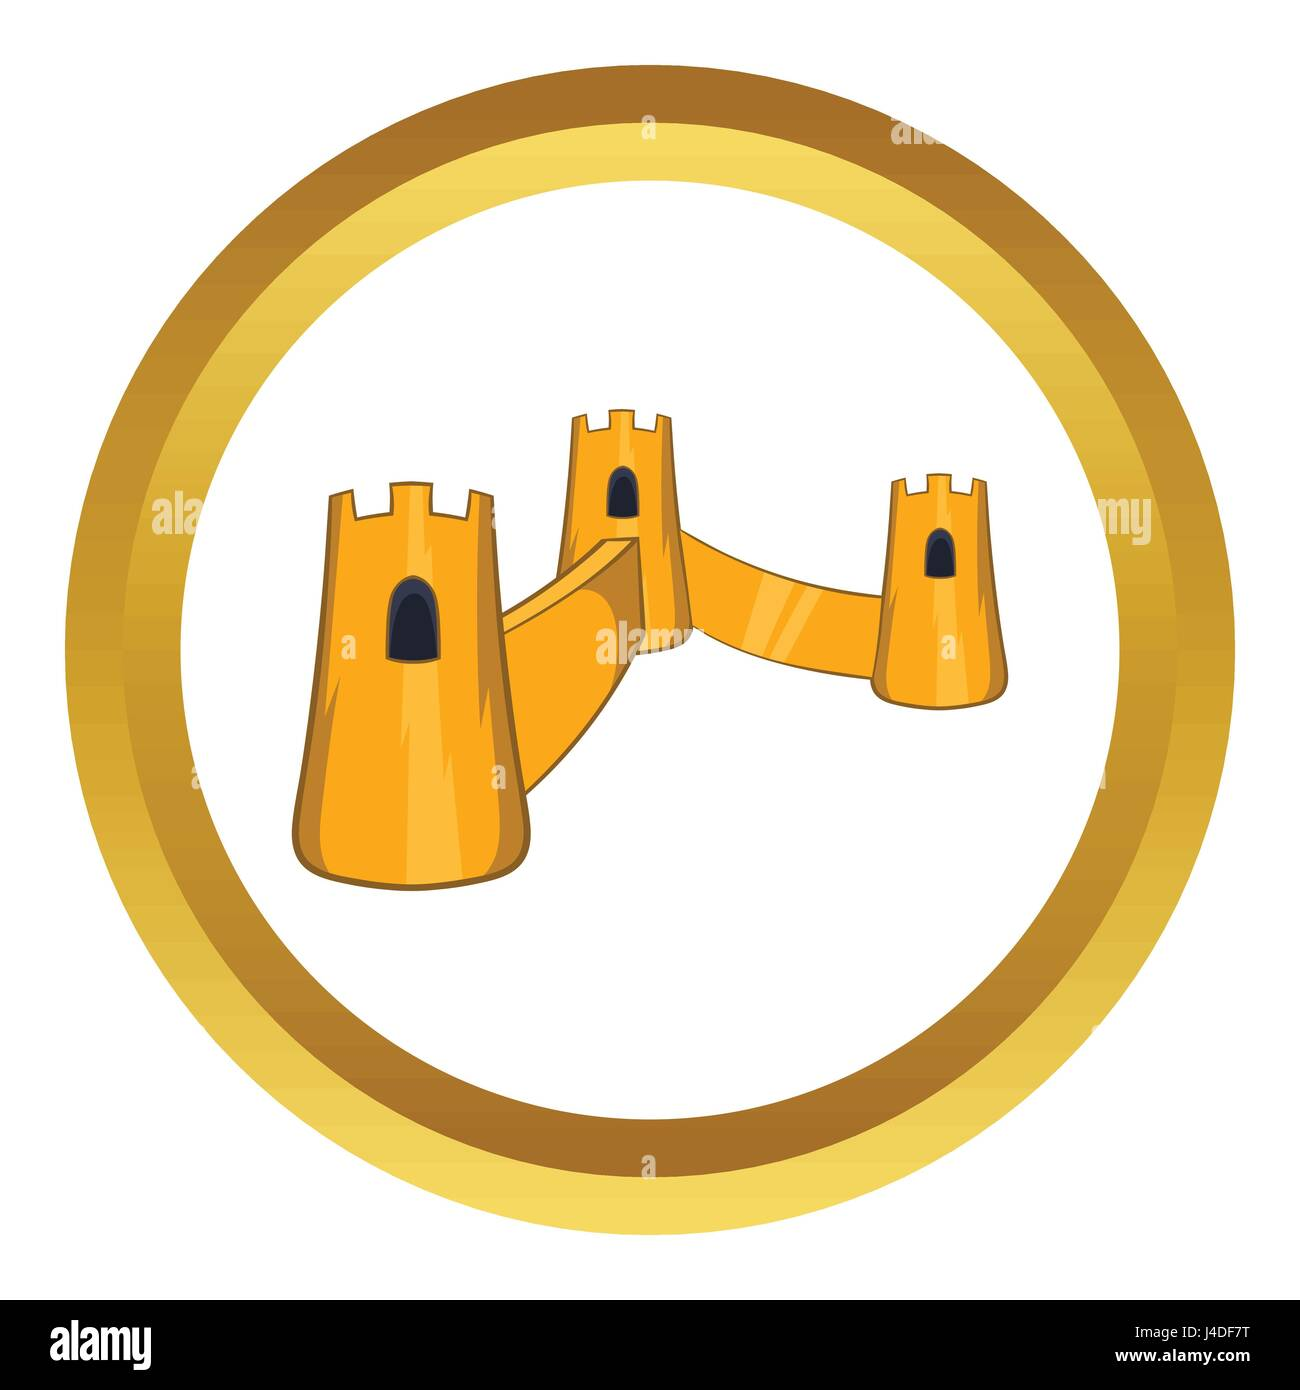 Great Wall of China vector icon Stock Vector Art & Illustration ...